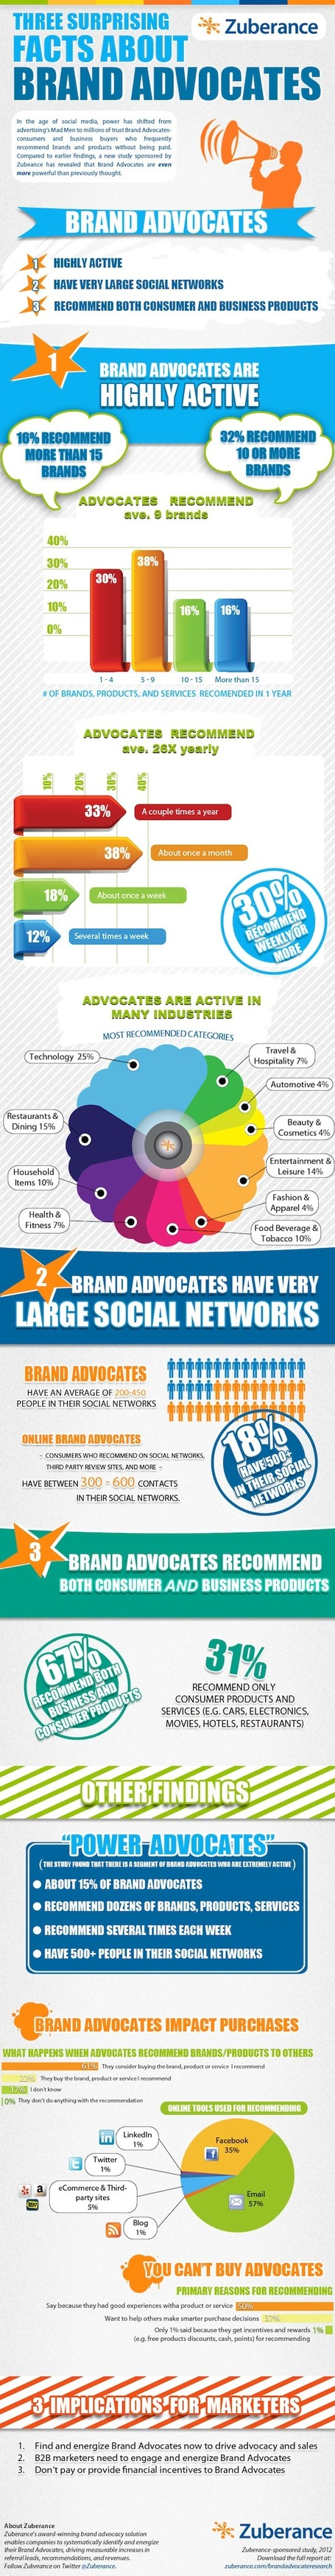 What Is A Brand Advocate? | Online-Communities | Scoop.it